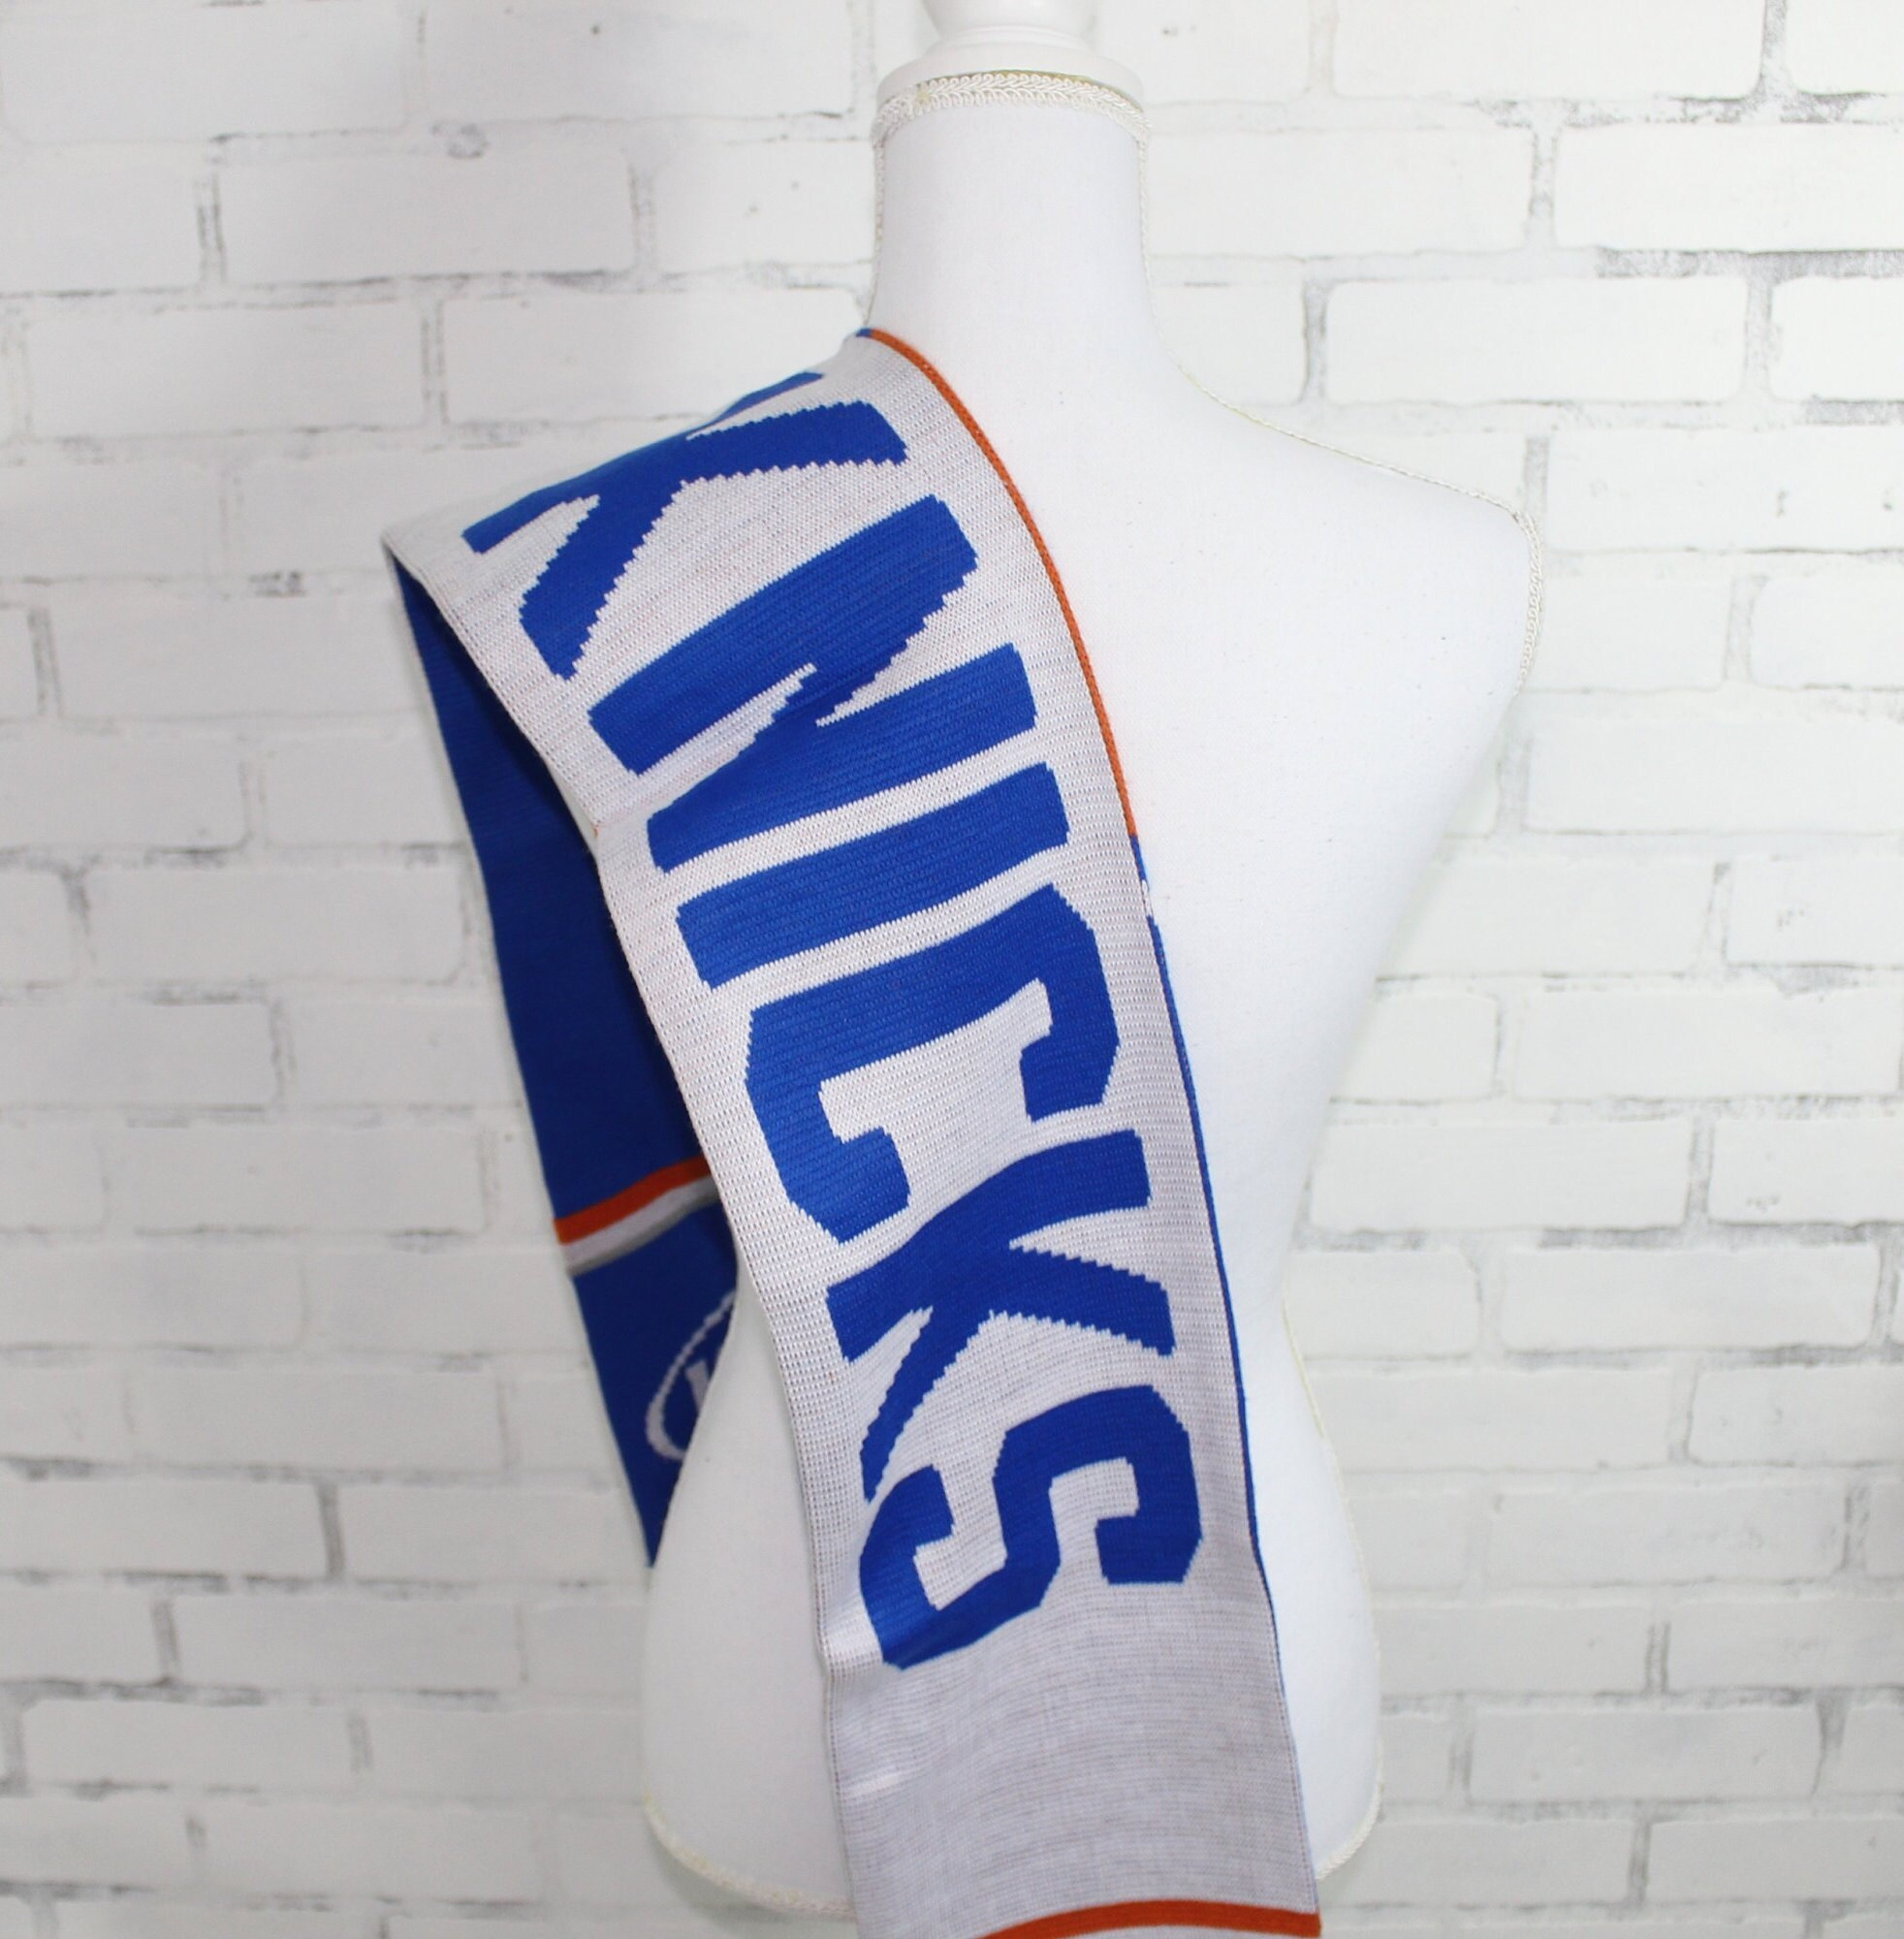 Vintage Scarf Styles -1920s to 1960s Knicks Nba Graphic Scarf  Rare One Of A Kind $0.00 AT vintagedancer.com